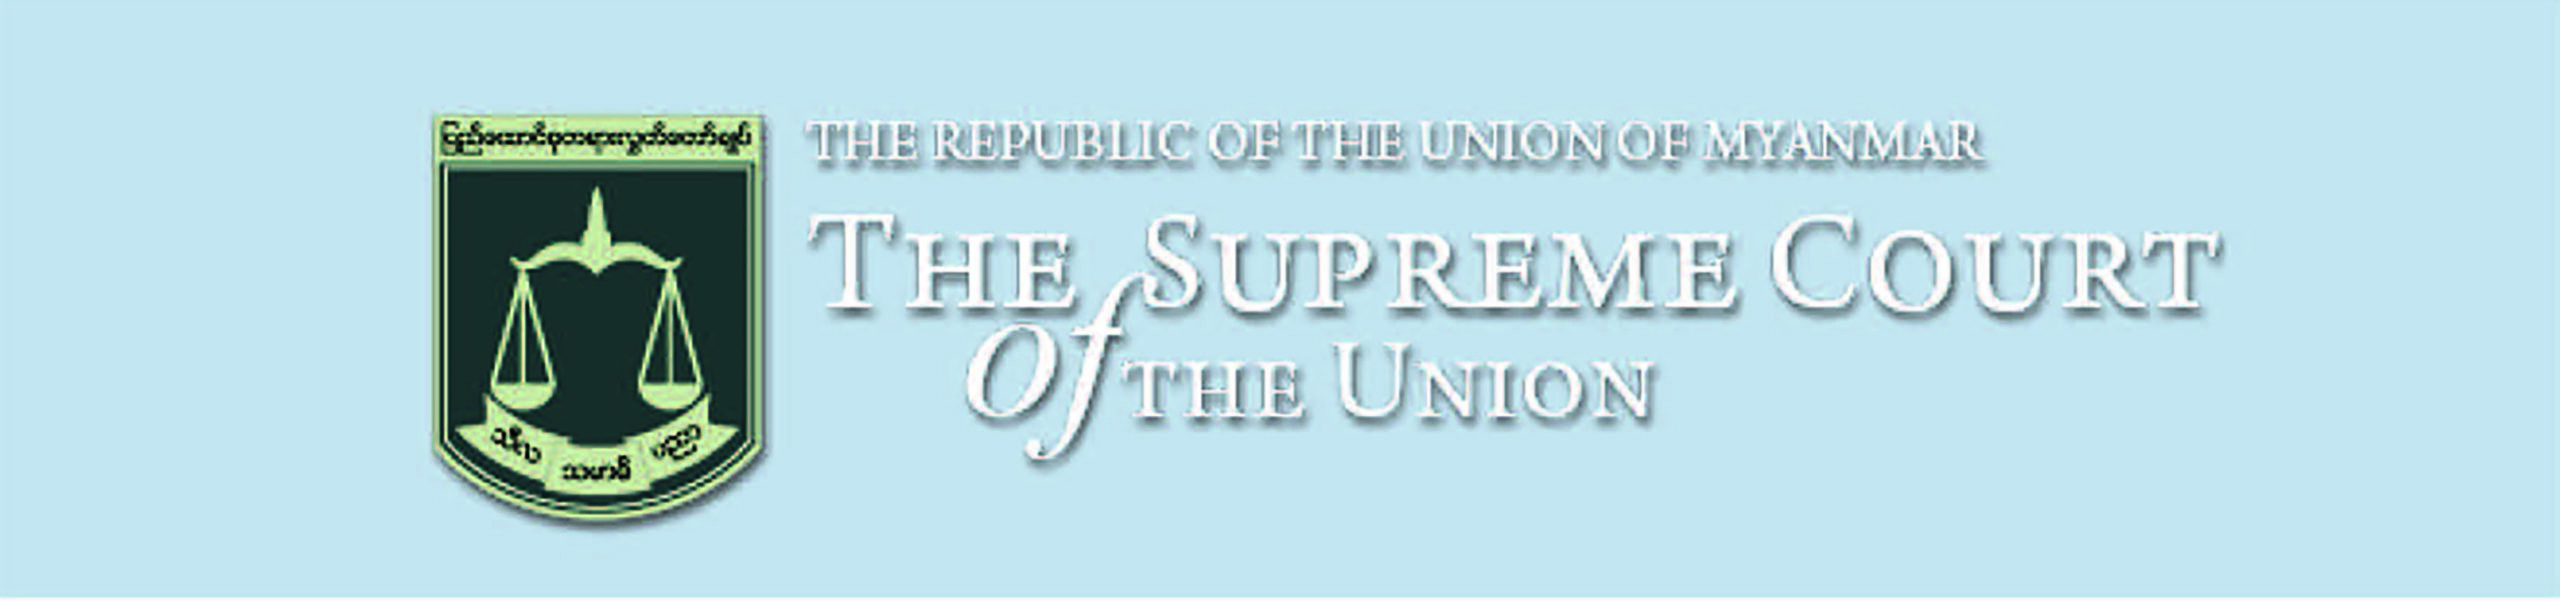 Supreme Court of the Union scaled